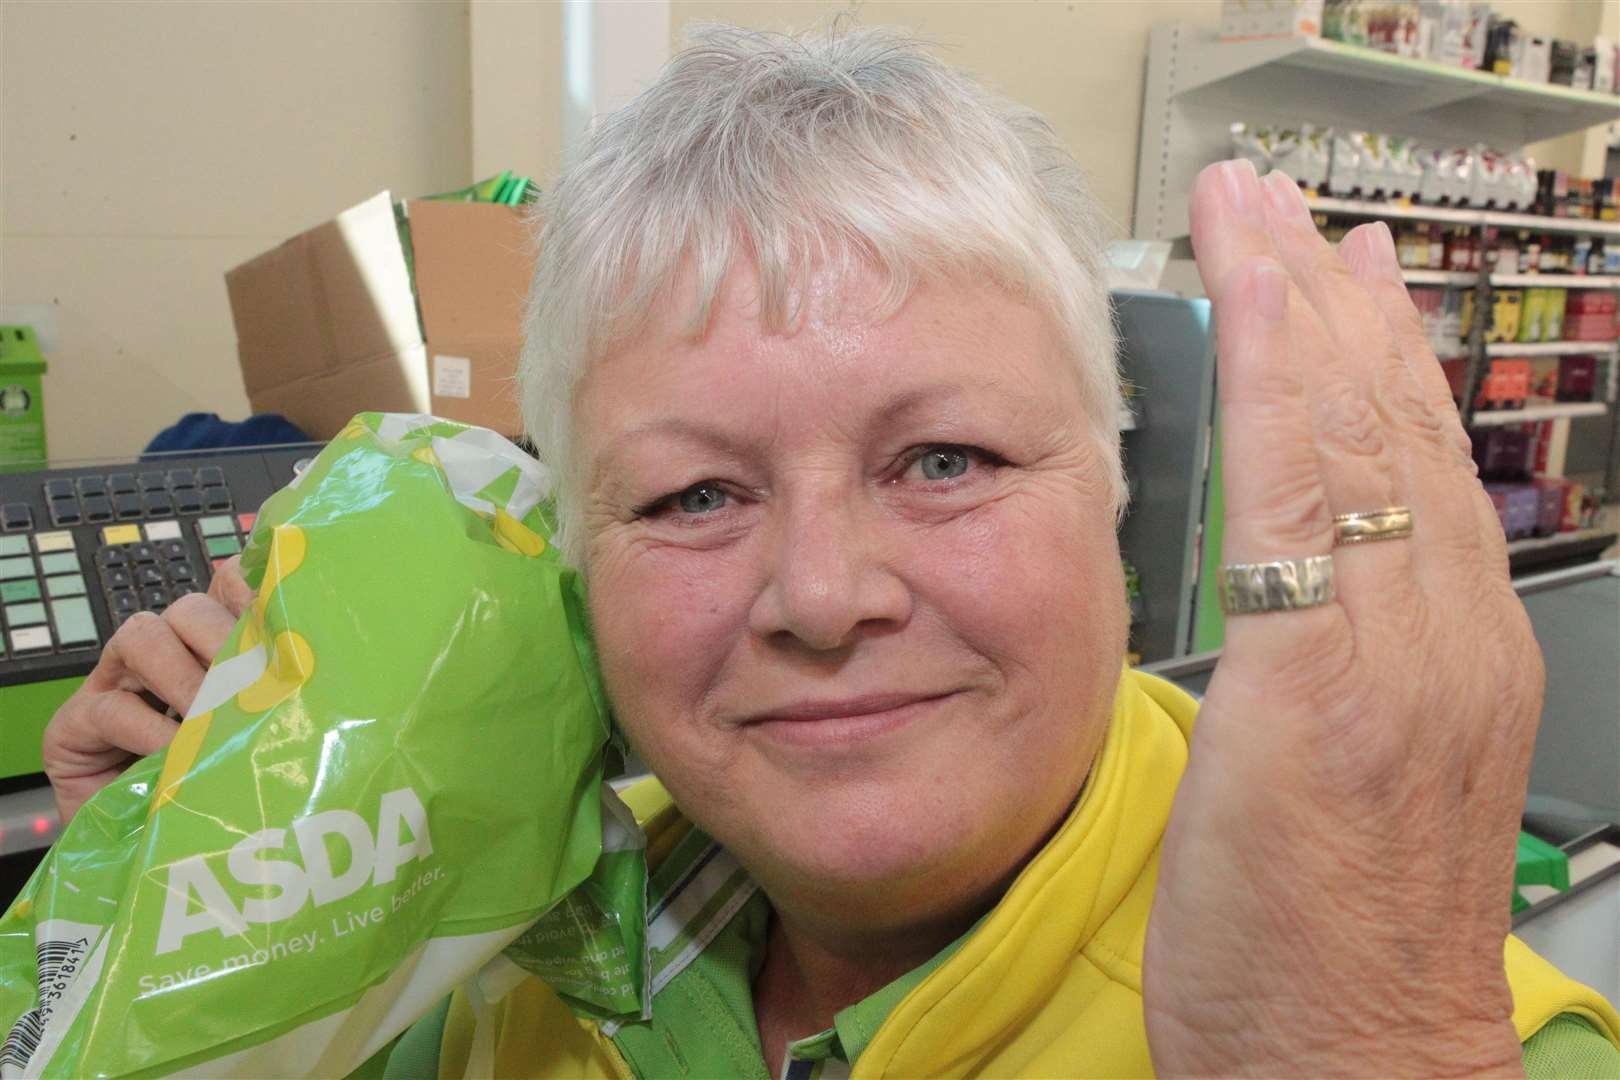 Checkout assistant June Cook is reunited with her old wedding ring that slipped off from her little finger while serving a customer at Asda on Pier Road in Gillingham. Picture: John Westhrop